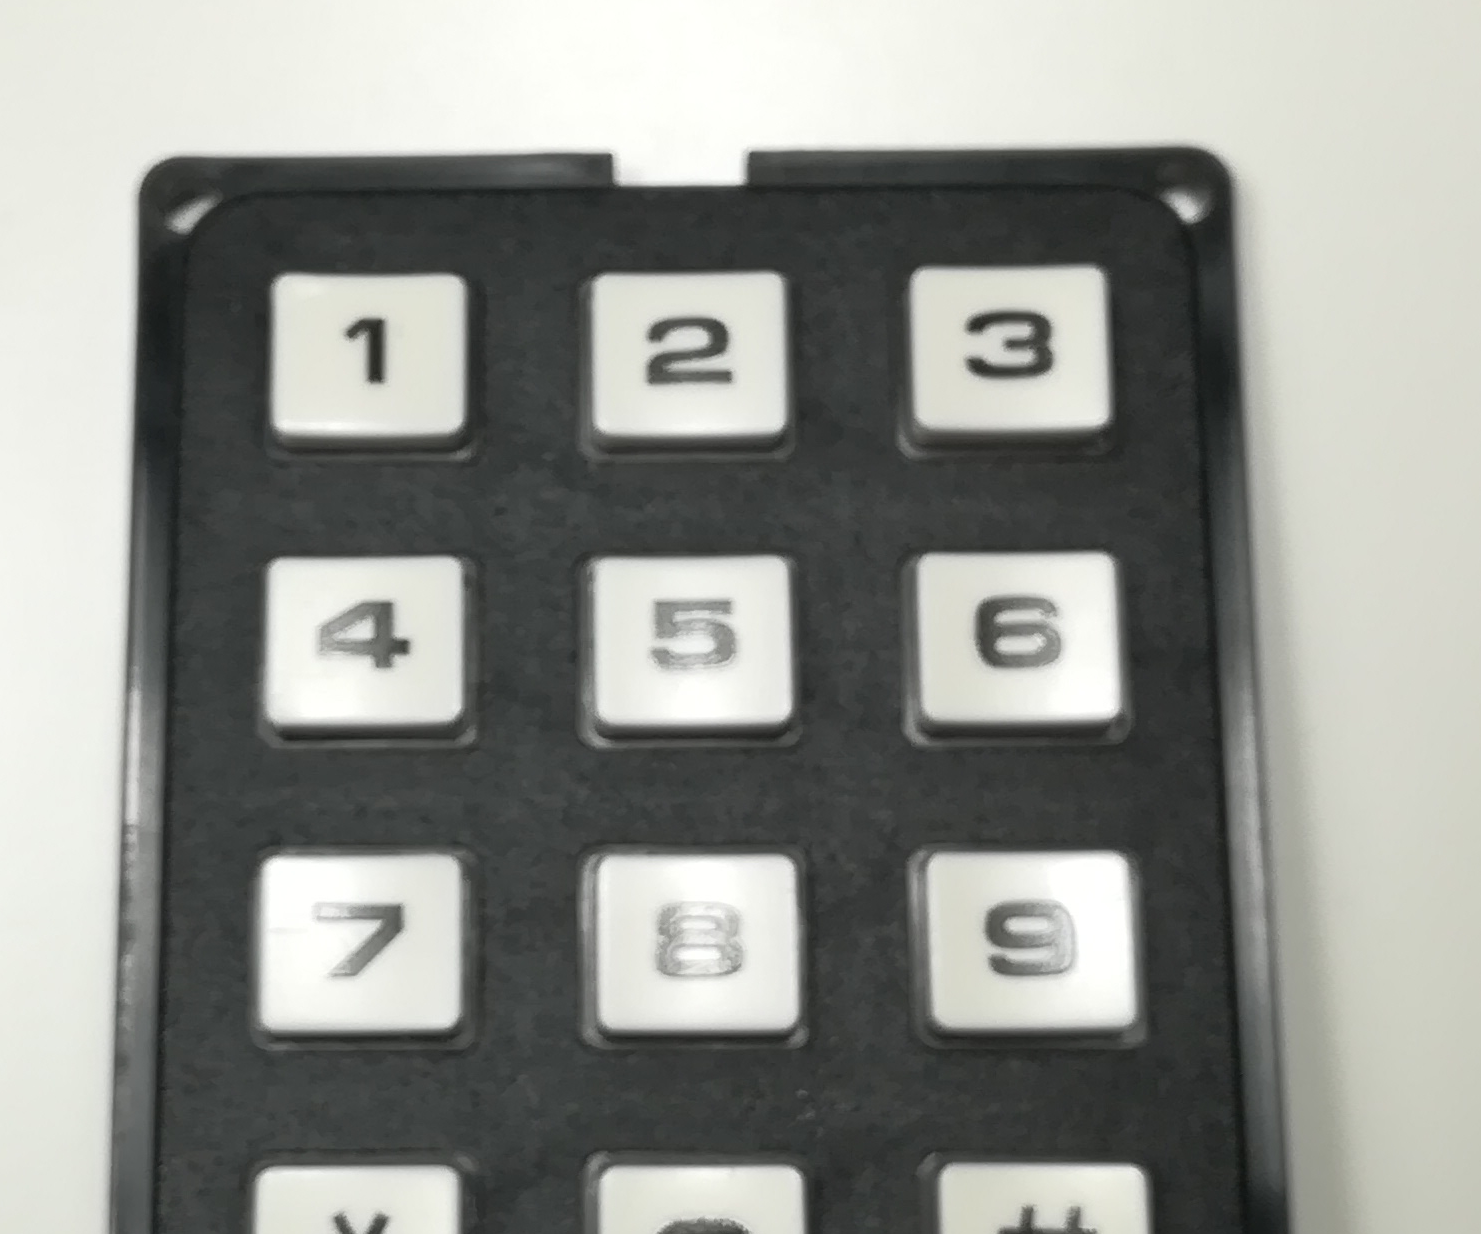 How to Interface Keypad With Raspberry Pi